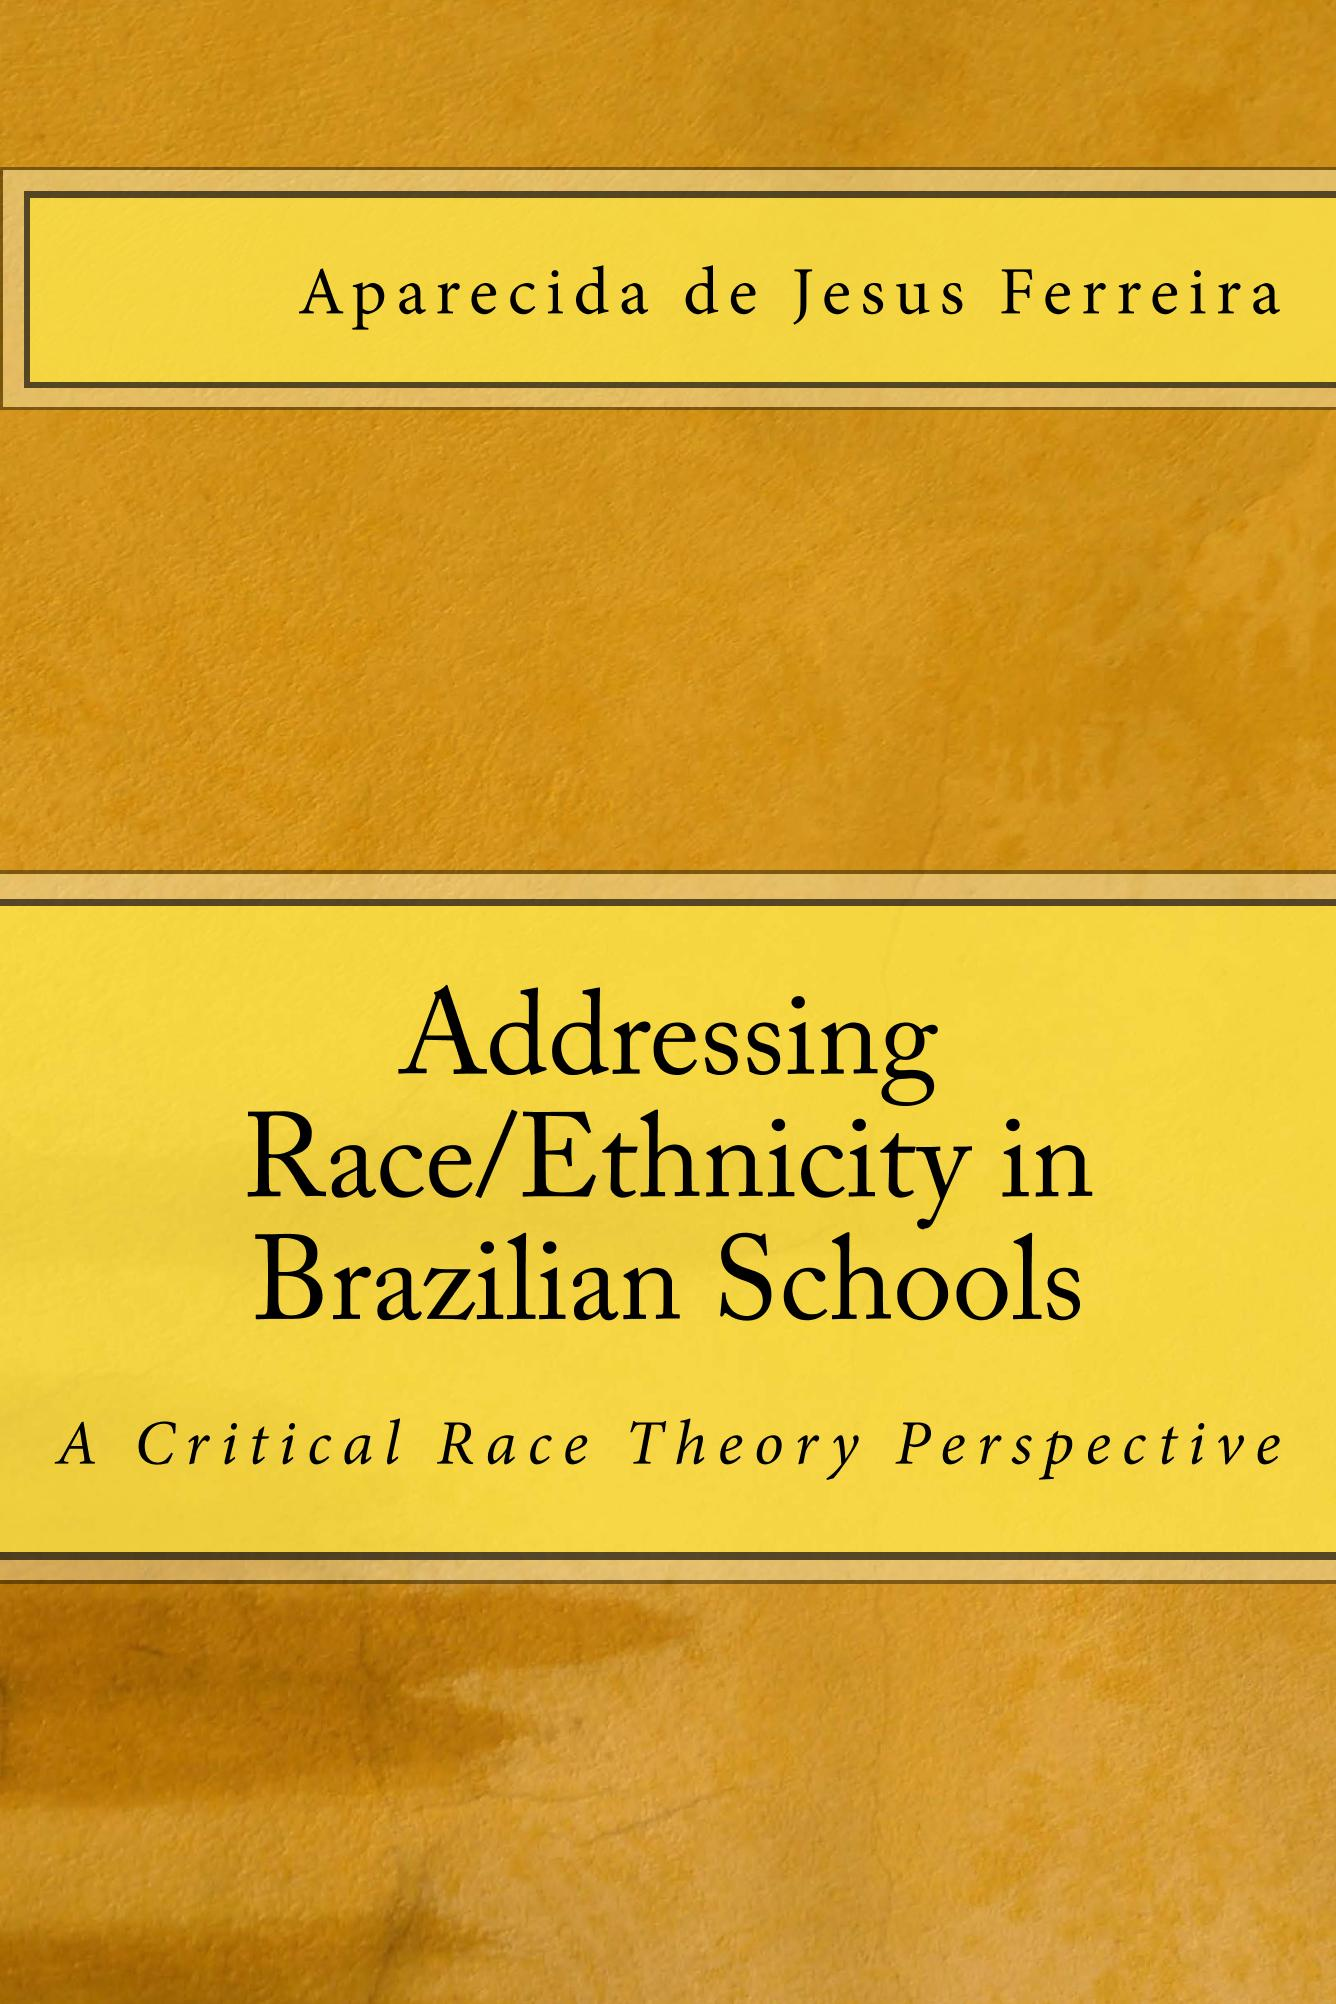 Addressing Race/Ethnicity in Brazilian Schools